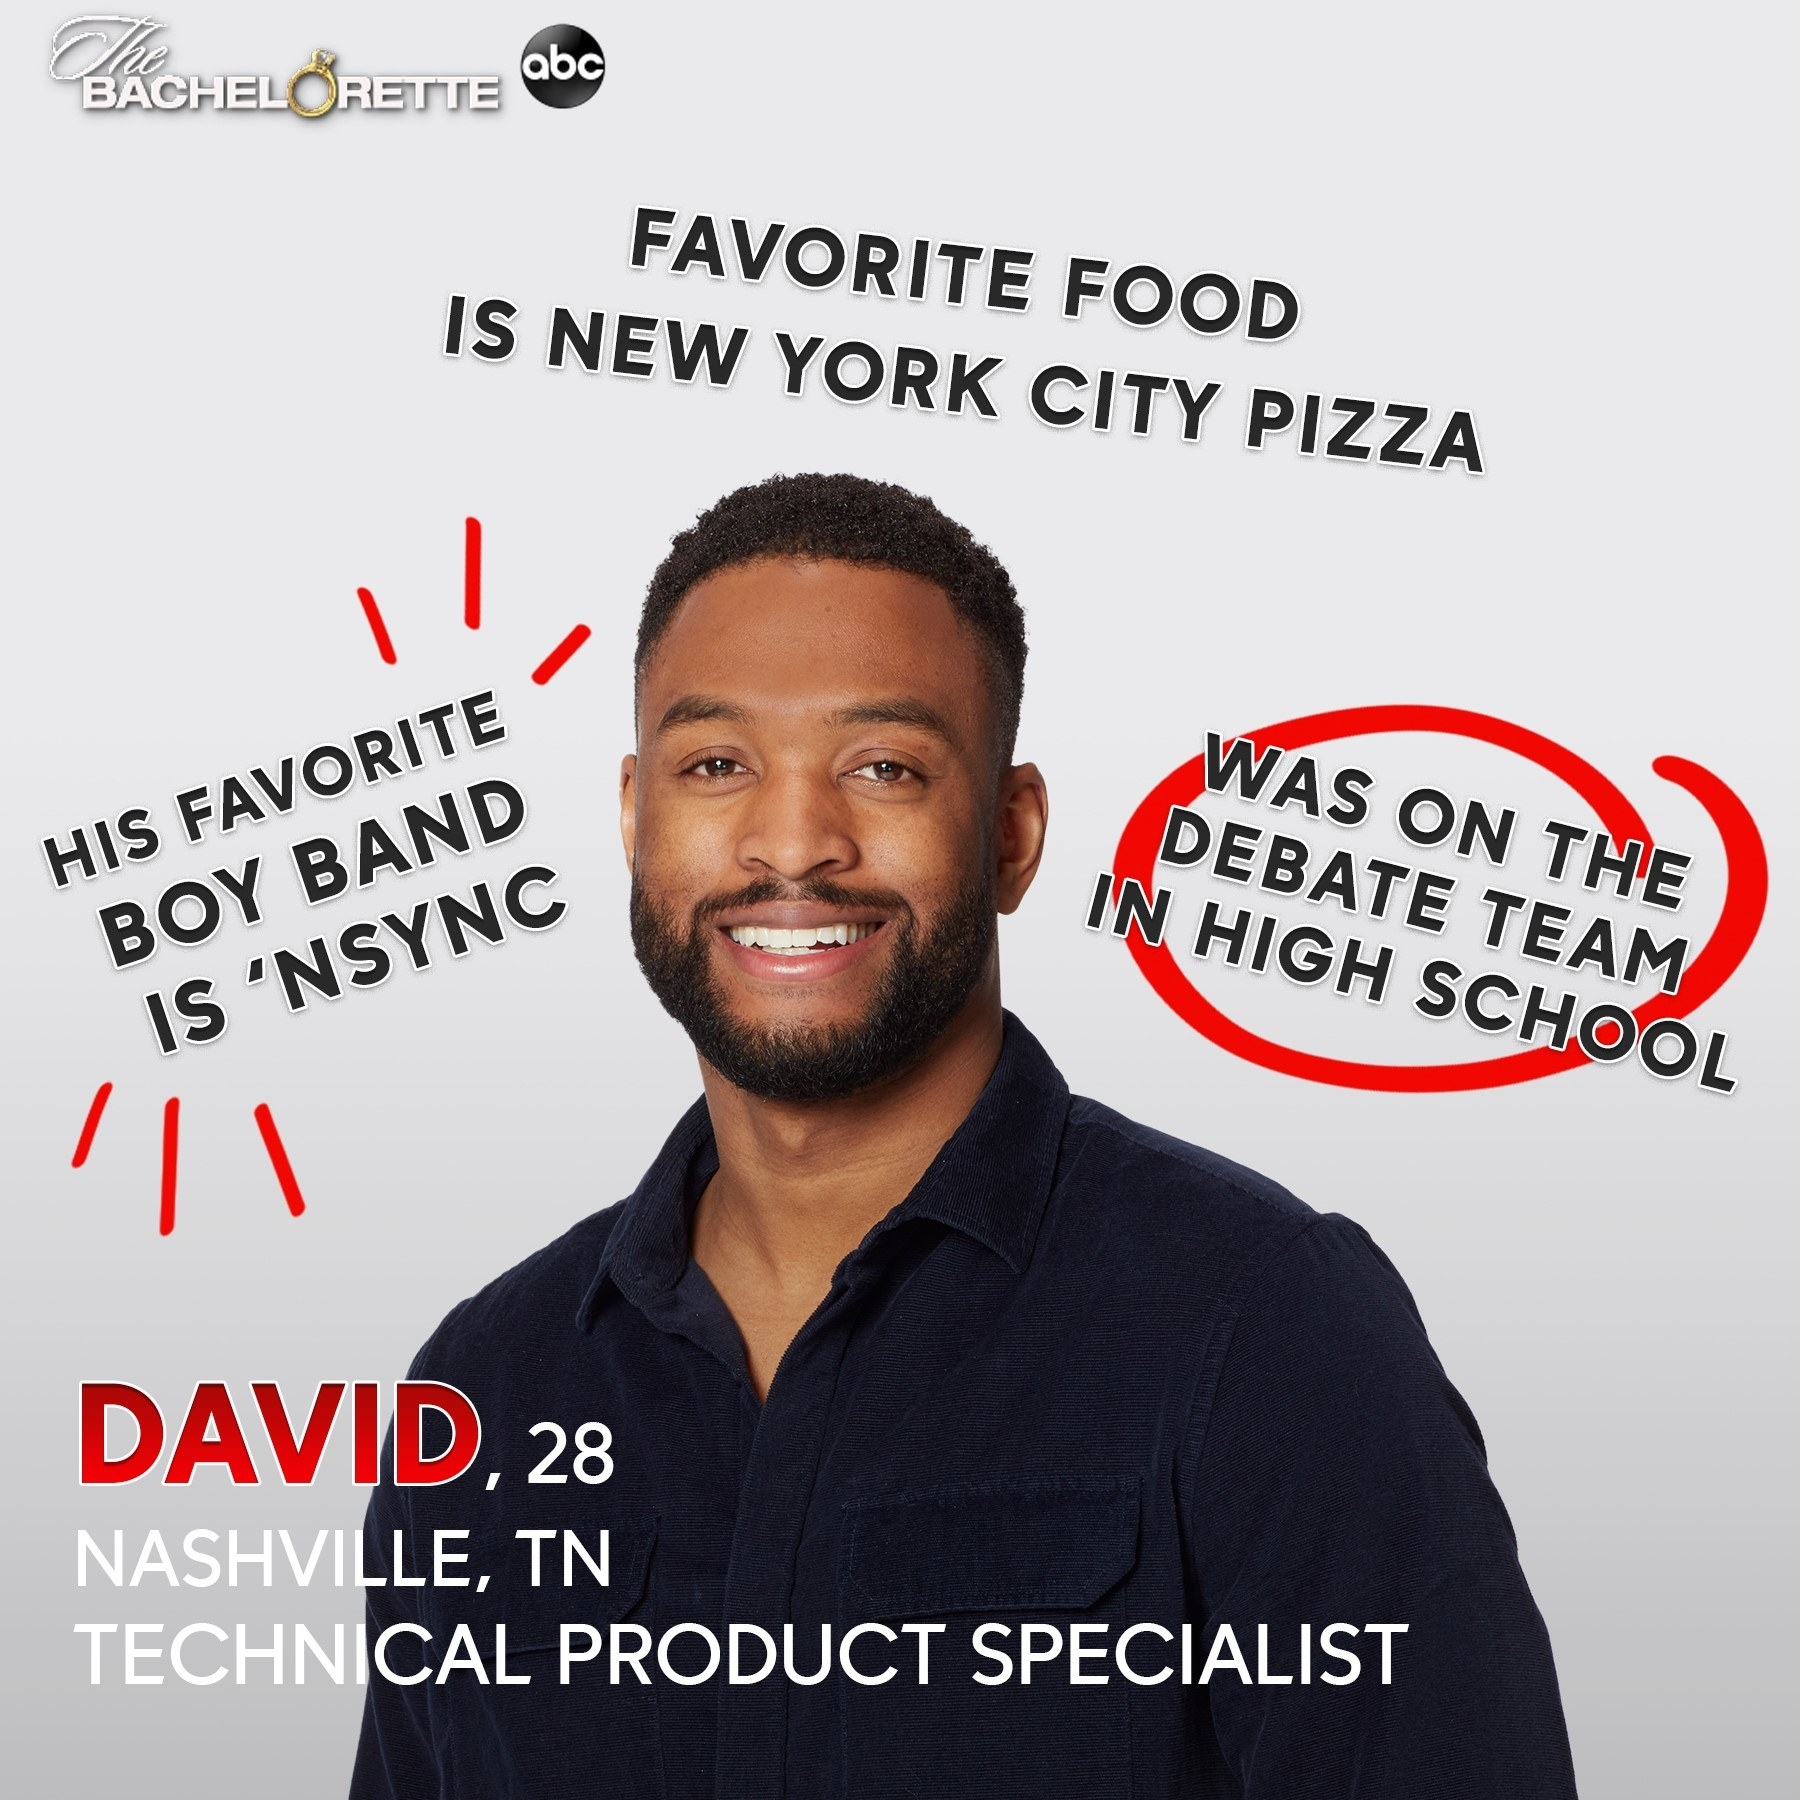 A technical product specialist who was on the debate team in high school and whose favorite food is New York pizza